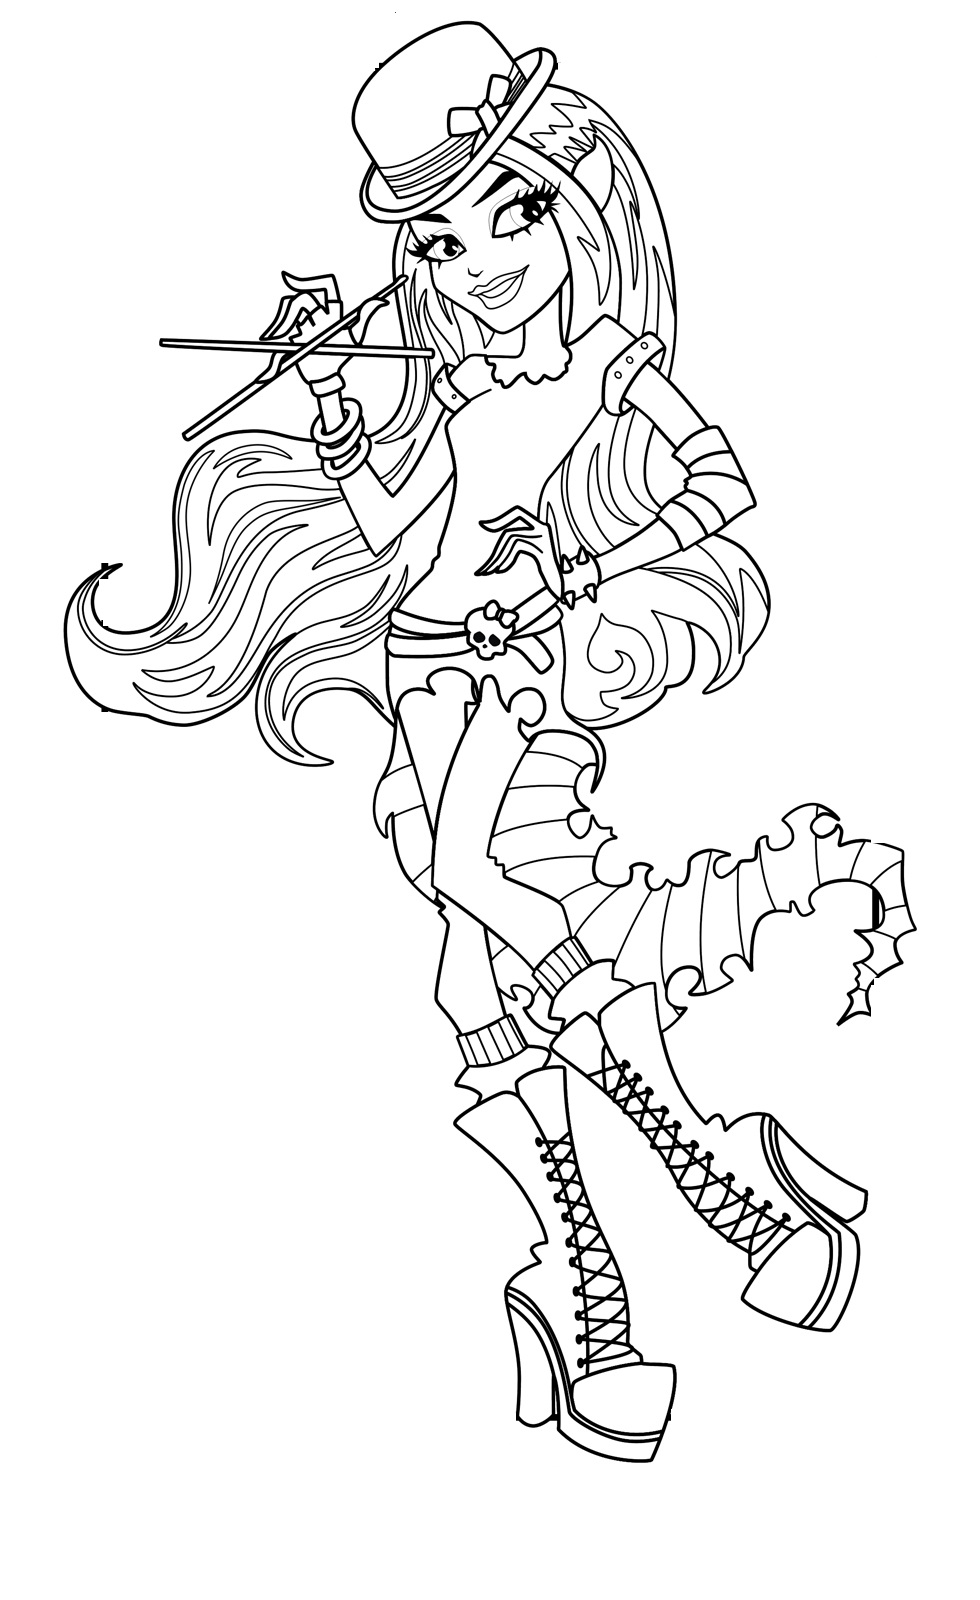 printable monster high coloring pages free printable monster high coloring pages february 2013 printable high coloring monster pages